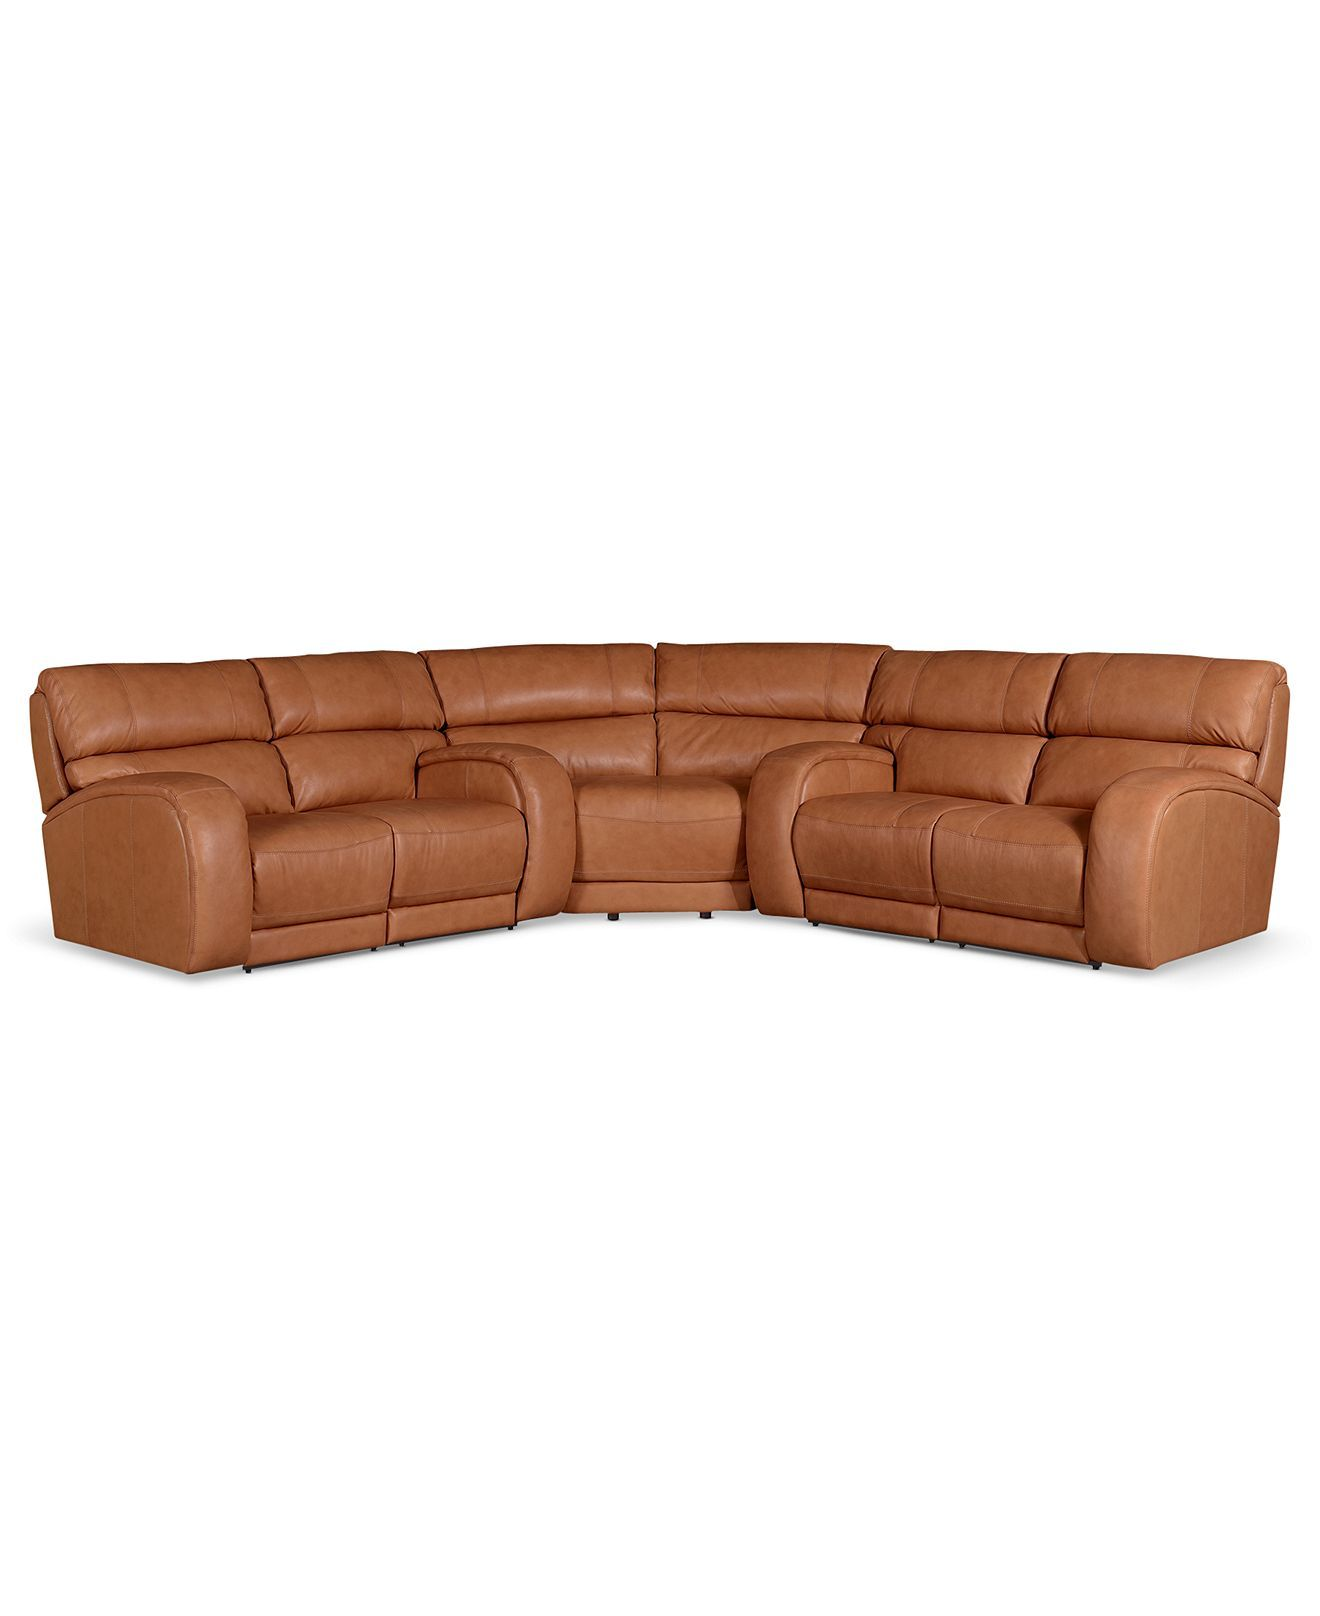 Damon leather reclining sectional sofa 3 piece power for 3 piece sectional sofa with wedge